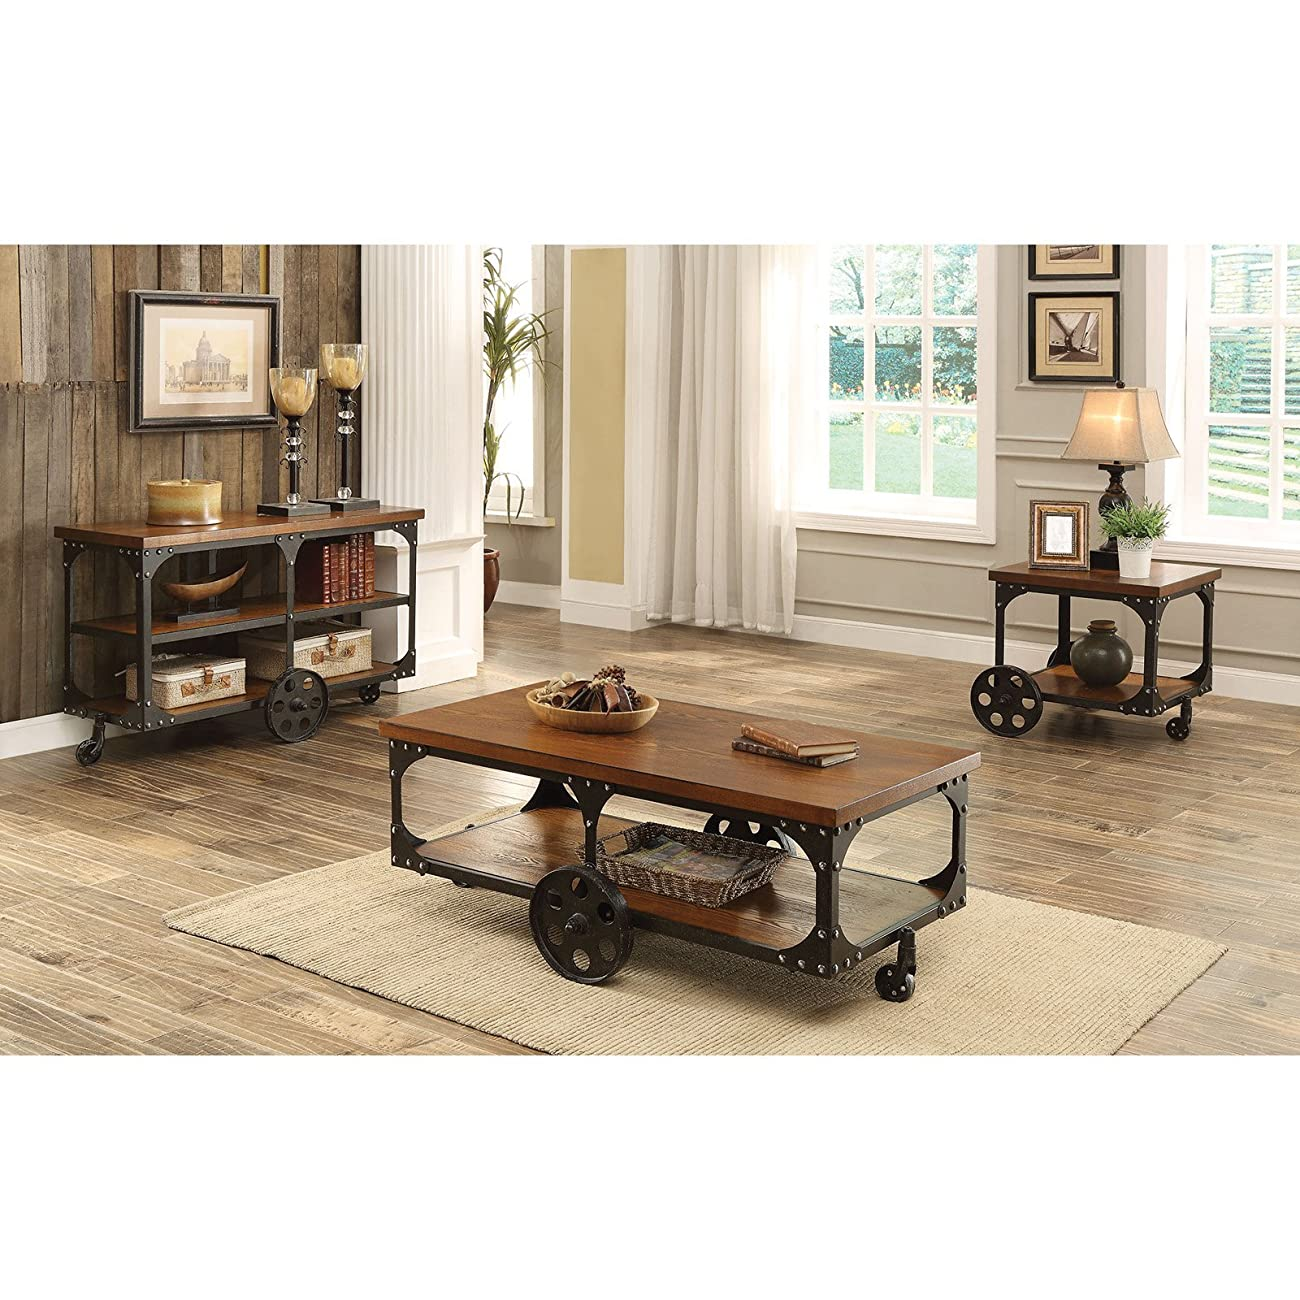 Coaster 701128 Home Furnishings Coffee Table, Rustic Brown 1